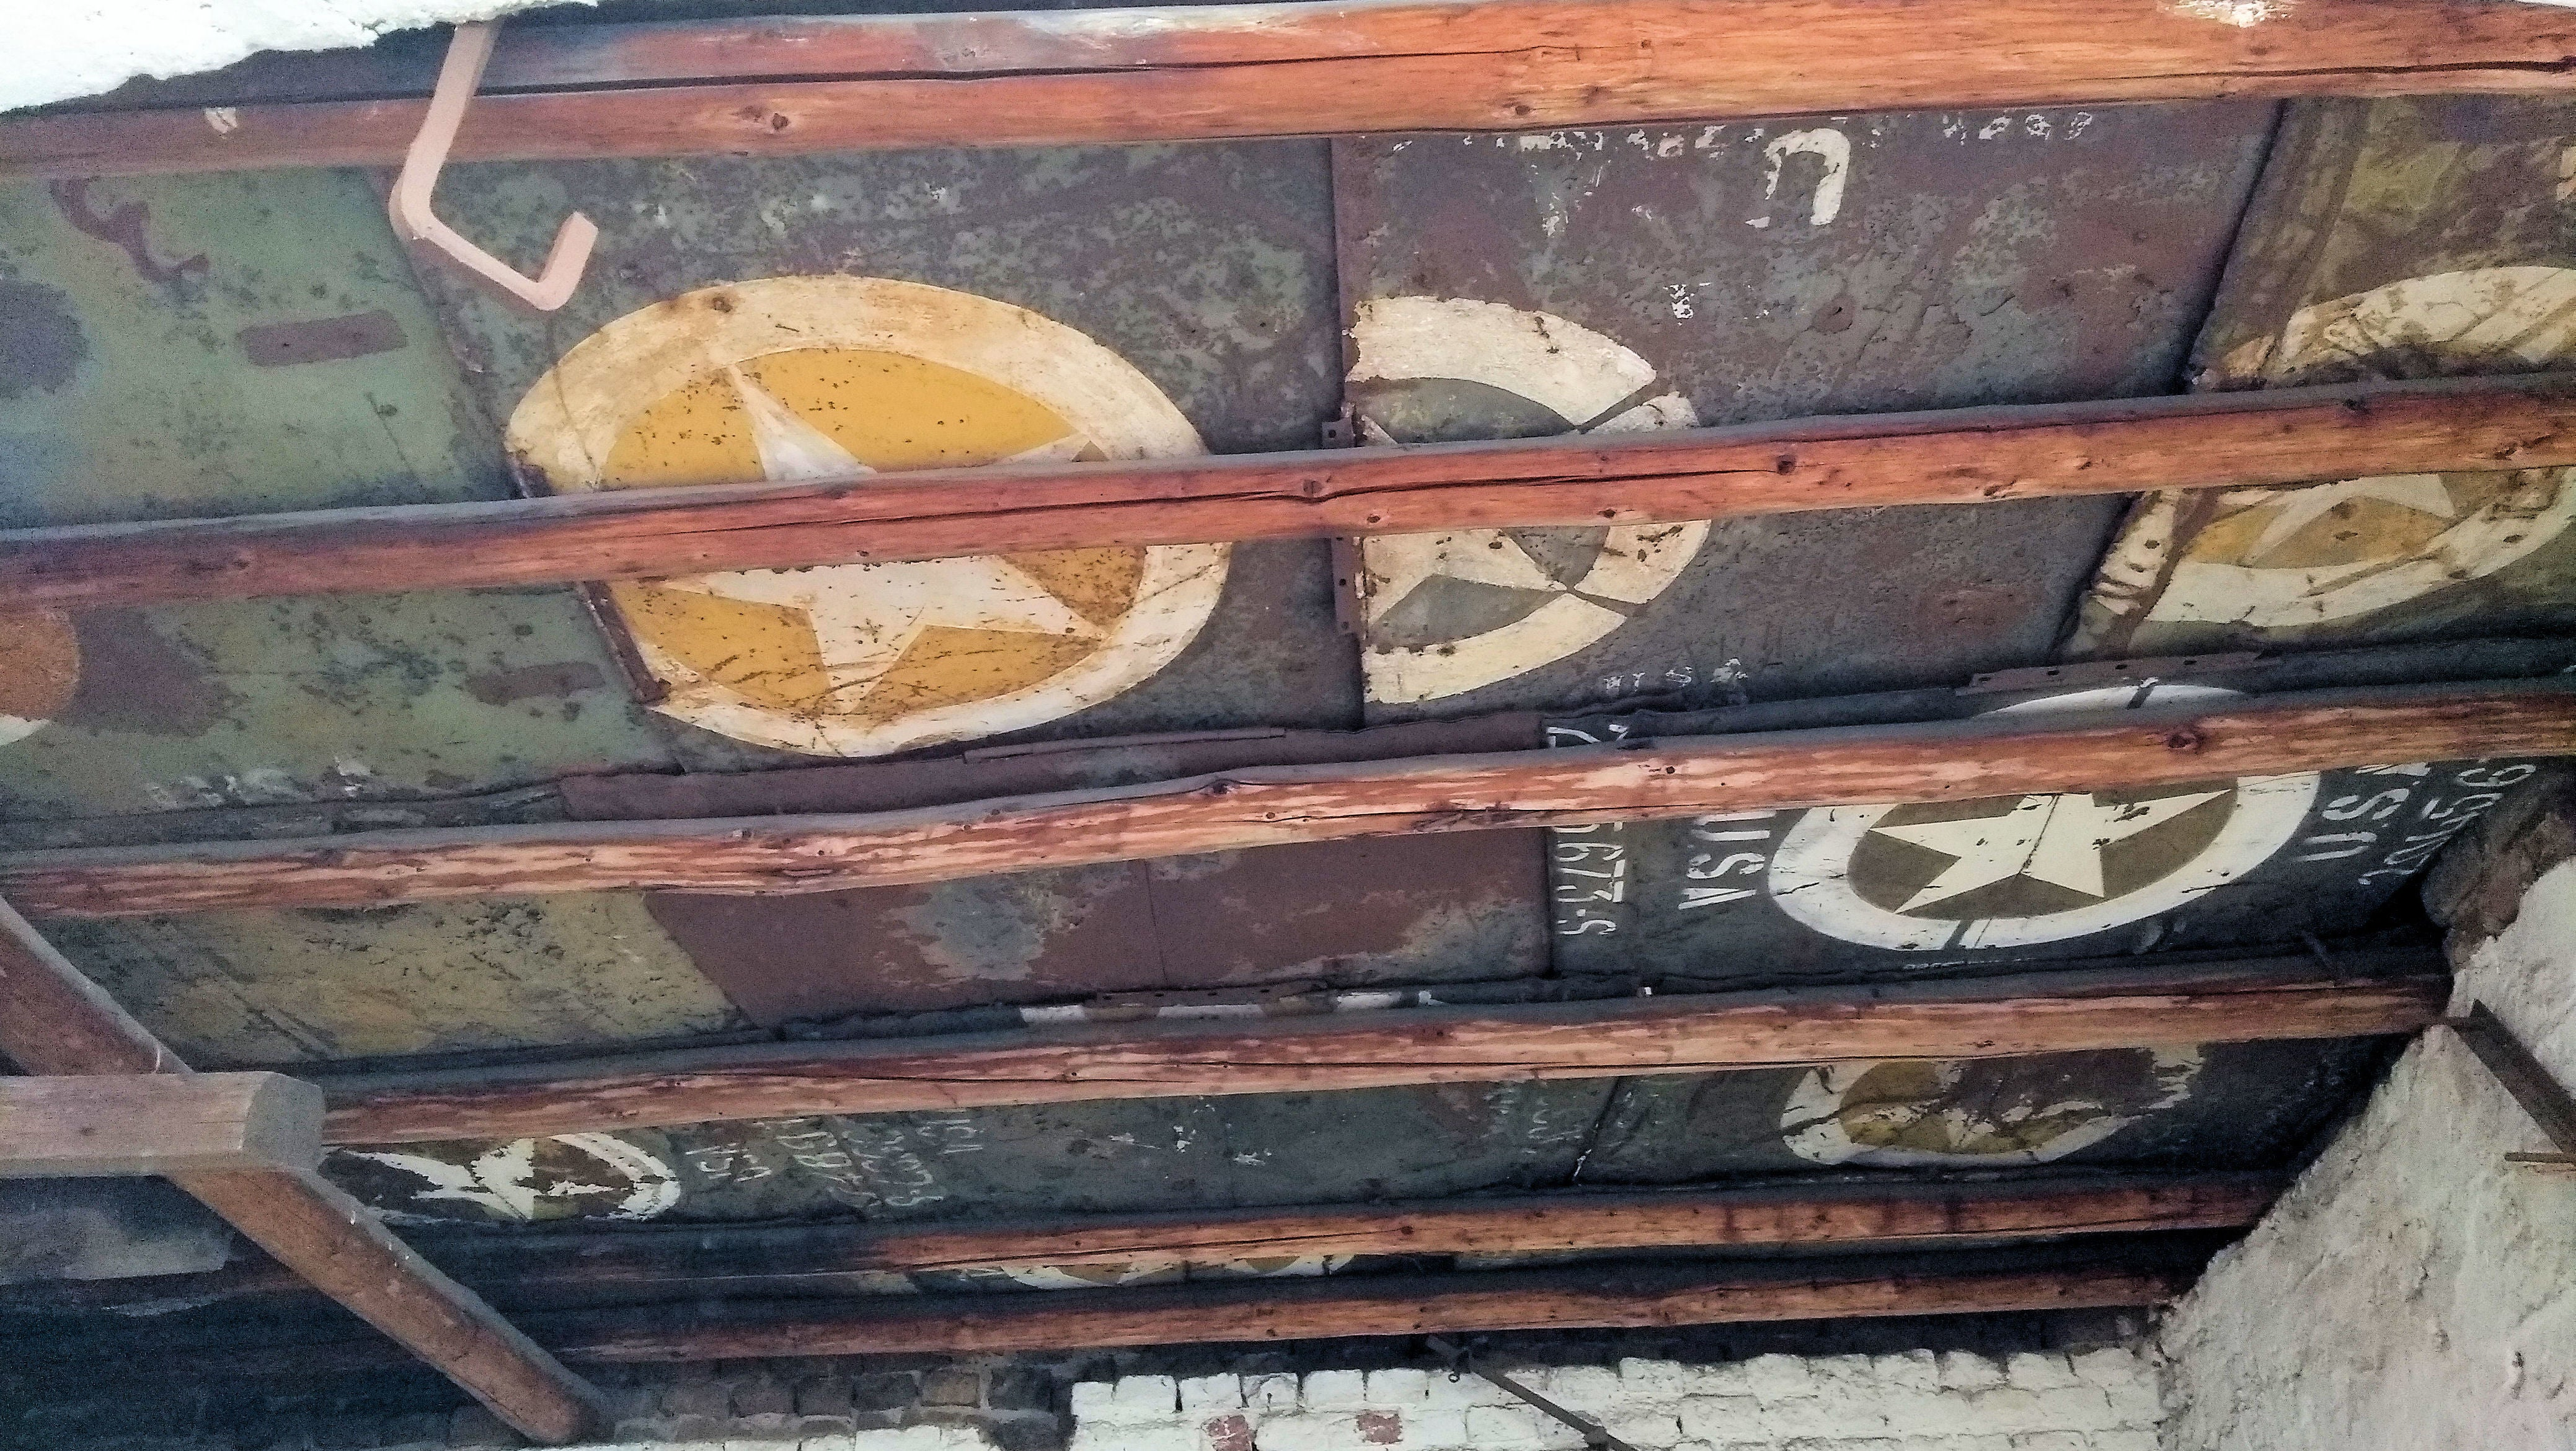 Germans Discover Military Jeep Hoods Used To Repair A Ceiling After World War II